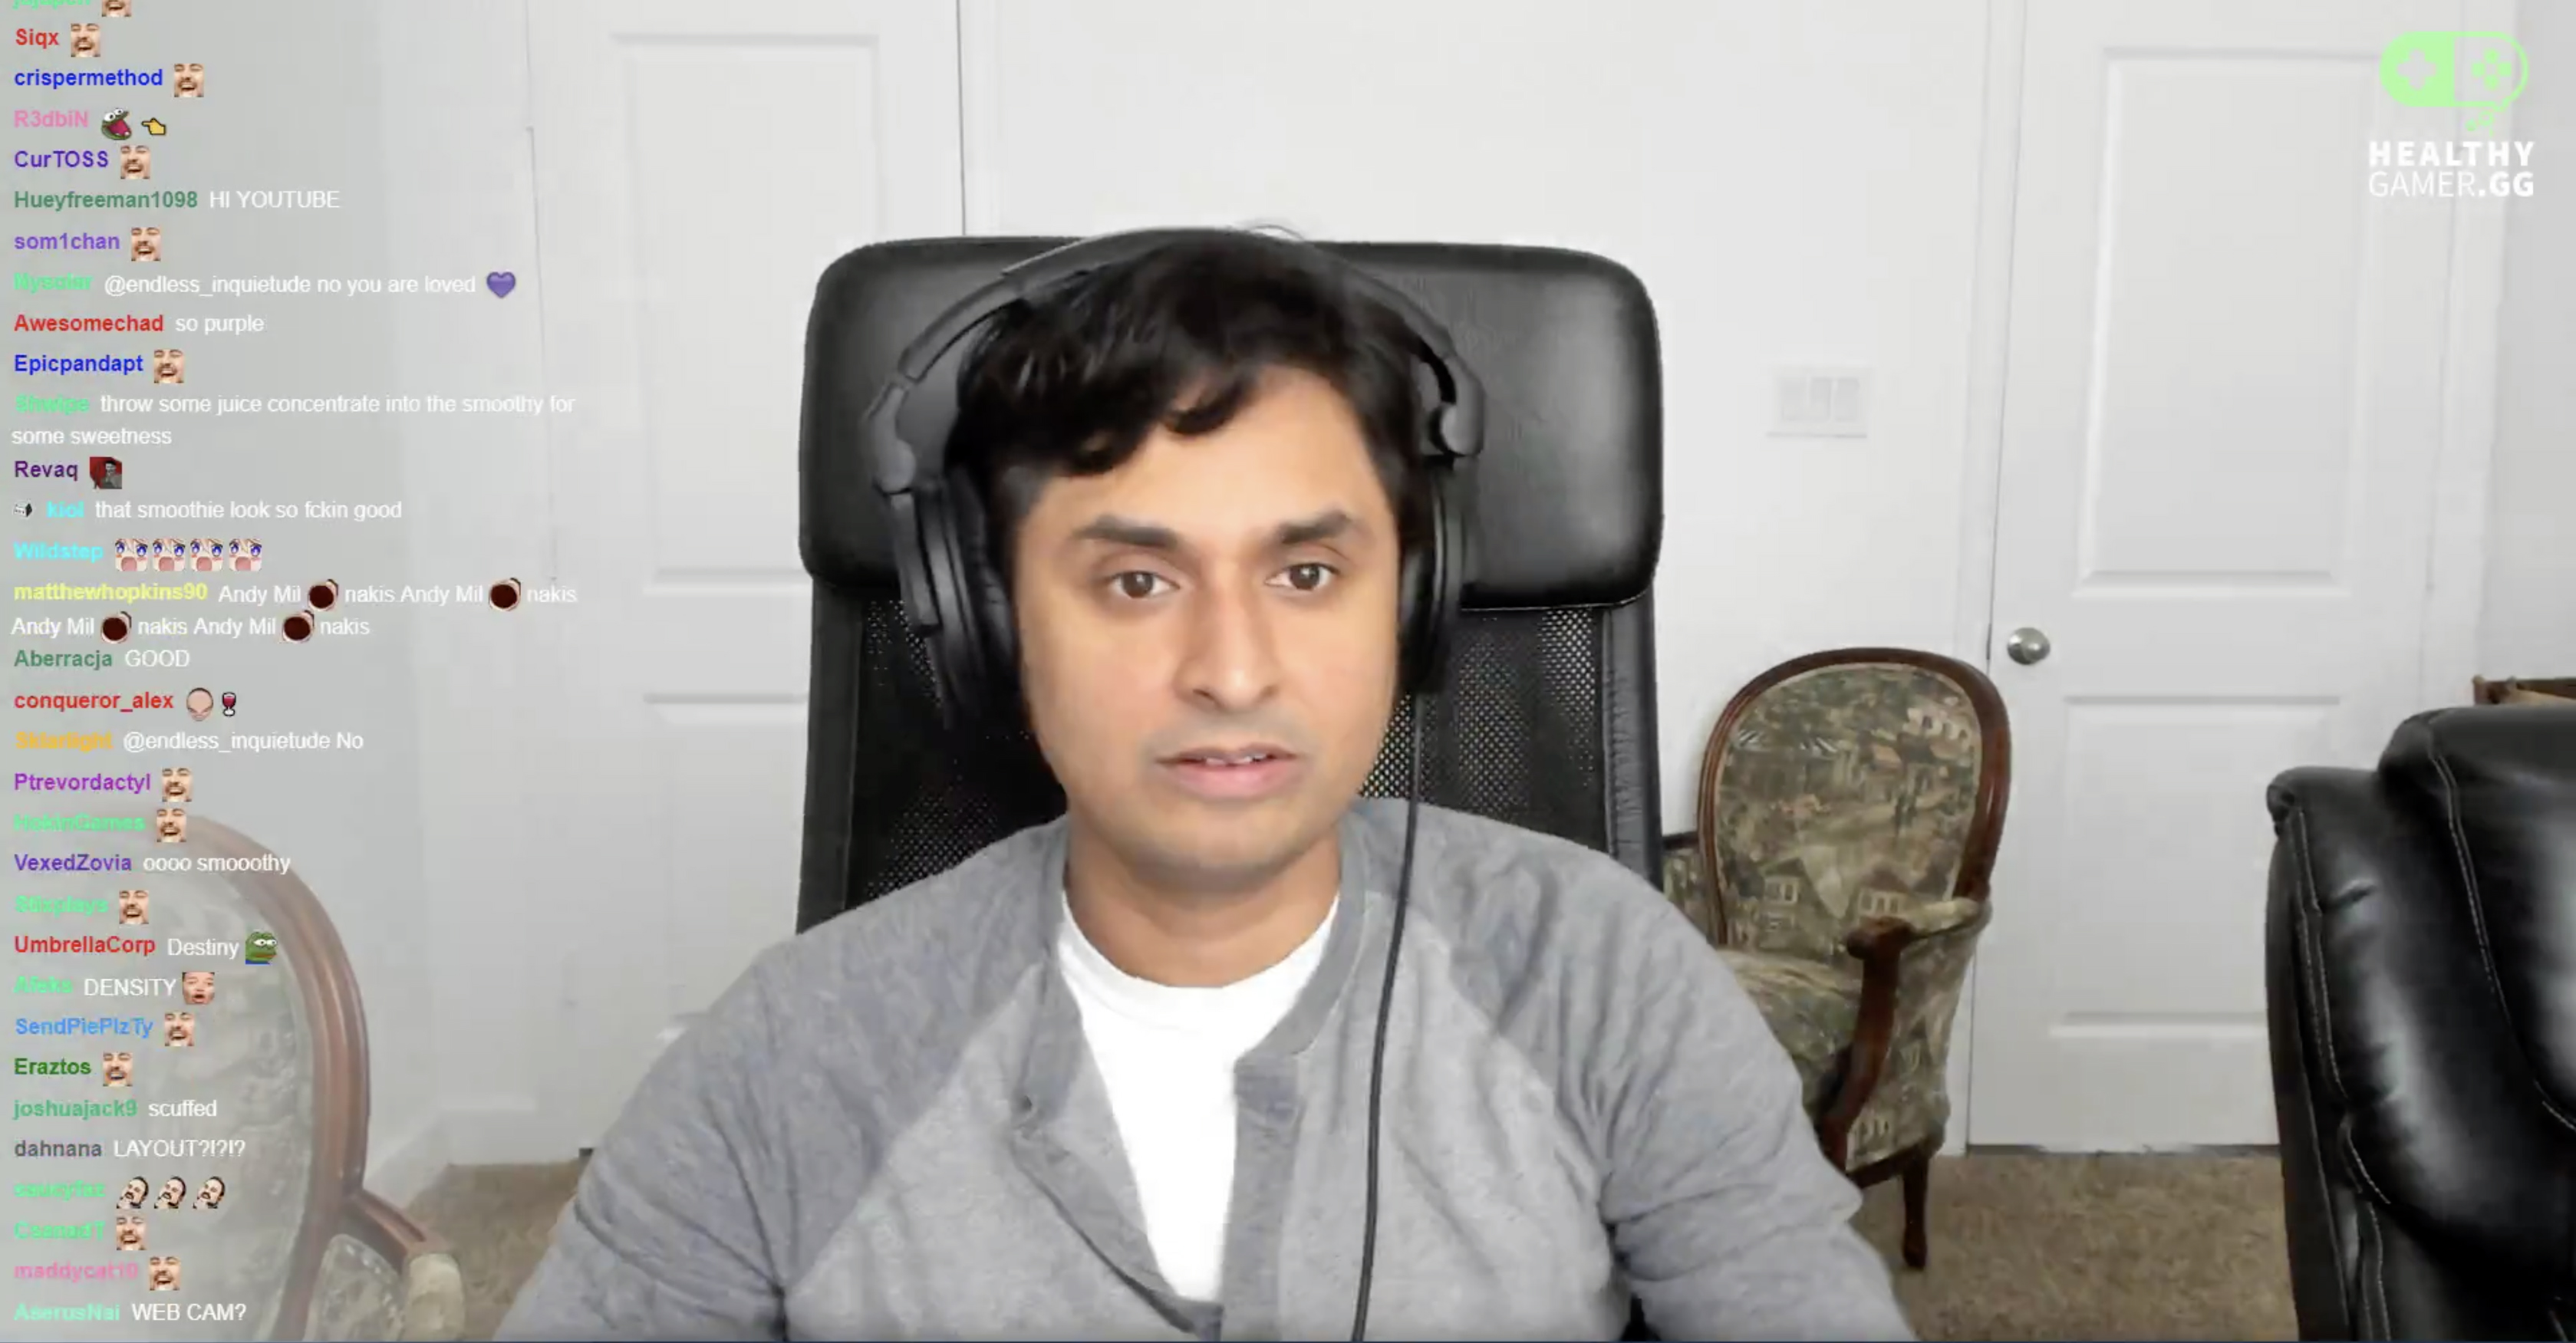 A Harvard-trained psychiatrist is on Twitch helping gamers with their mental health